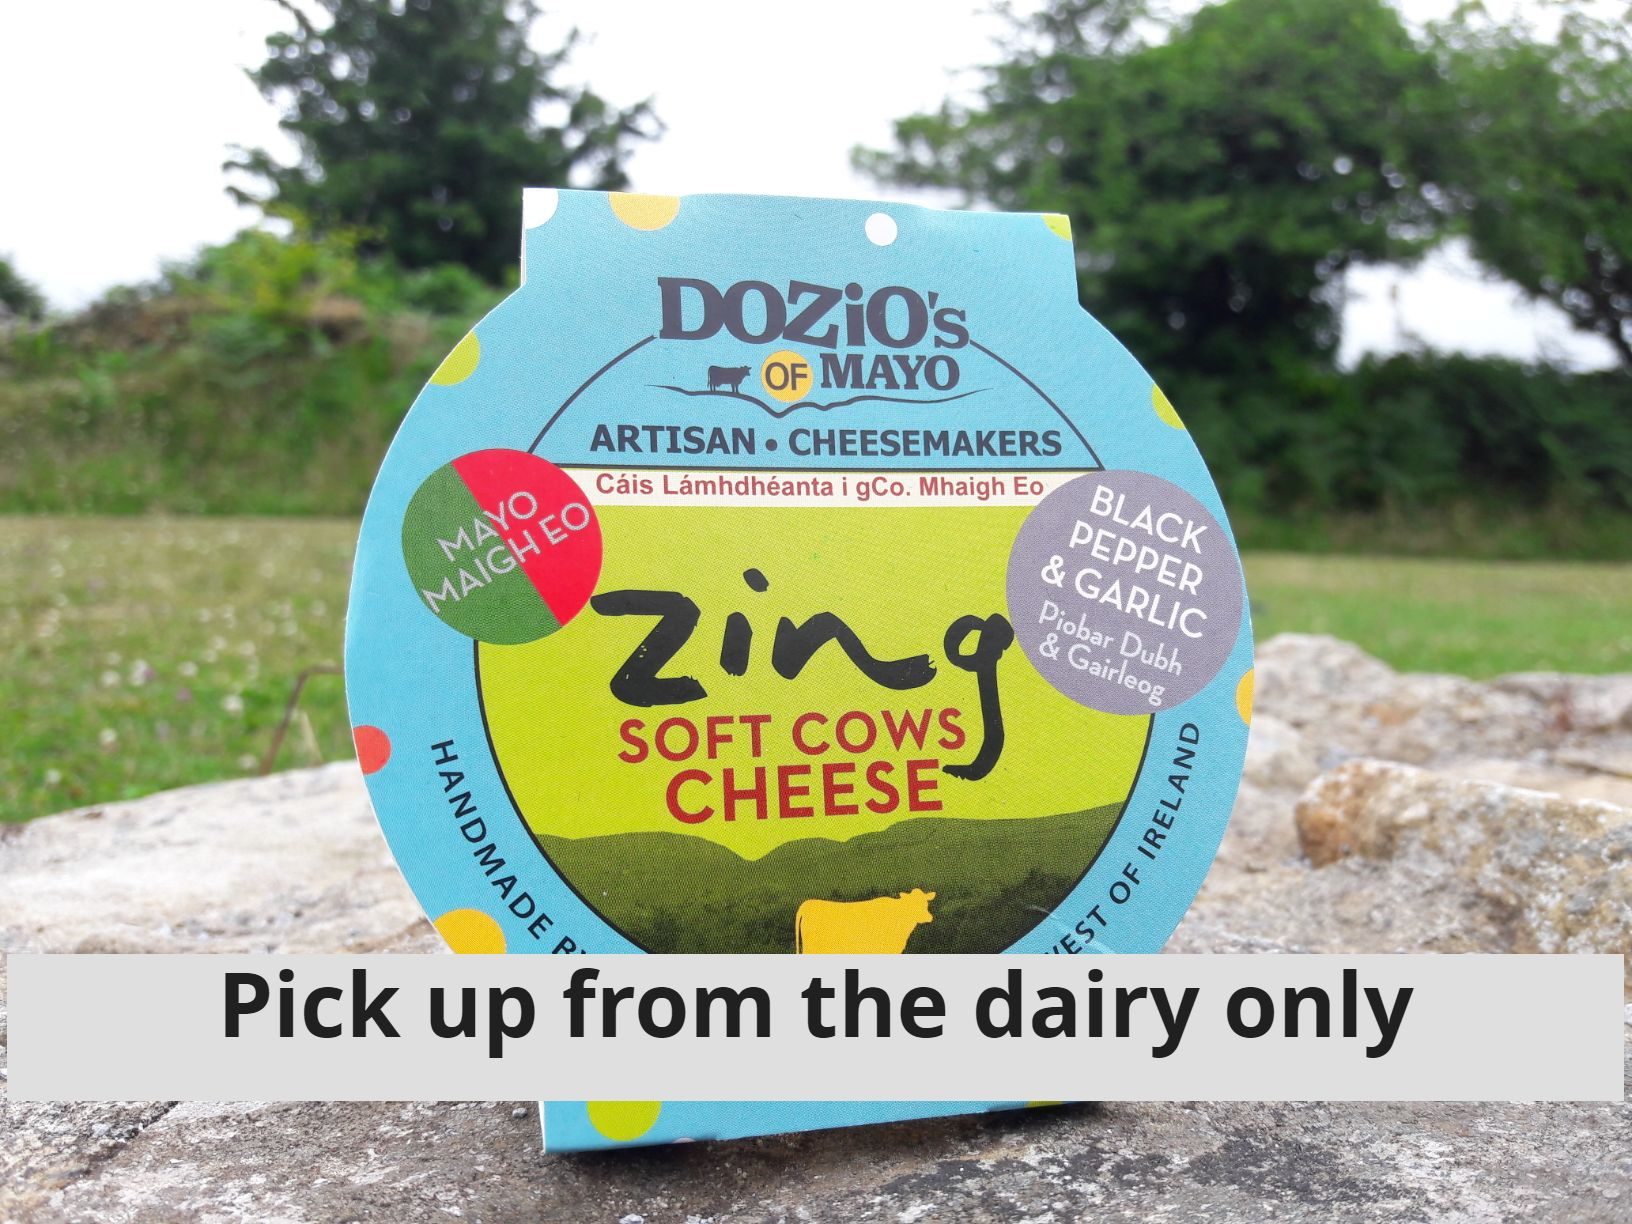 Zing - soft cheese